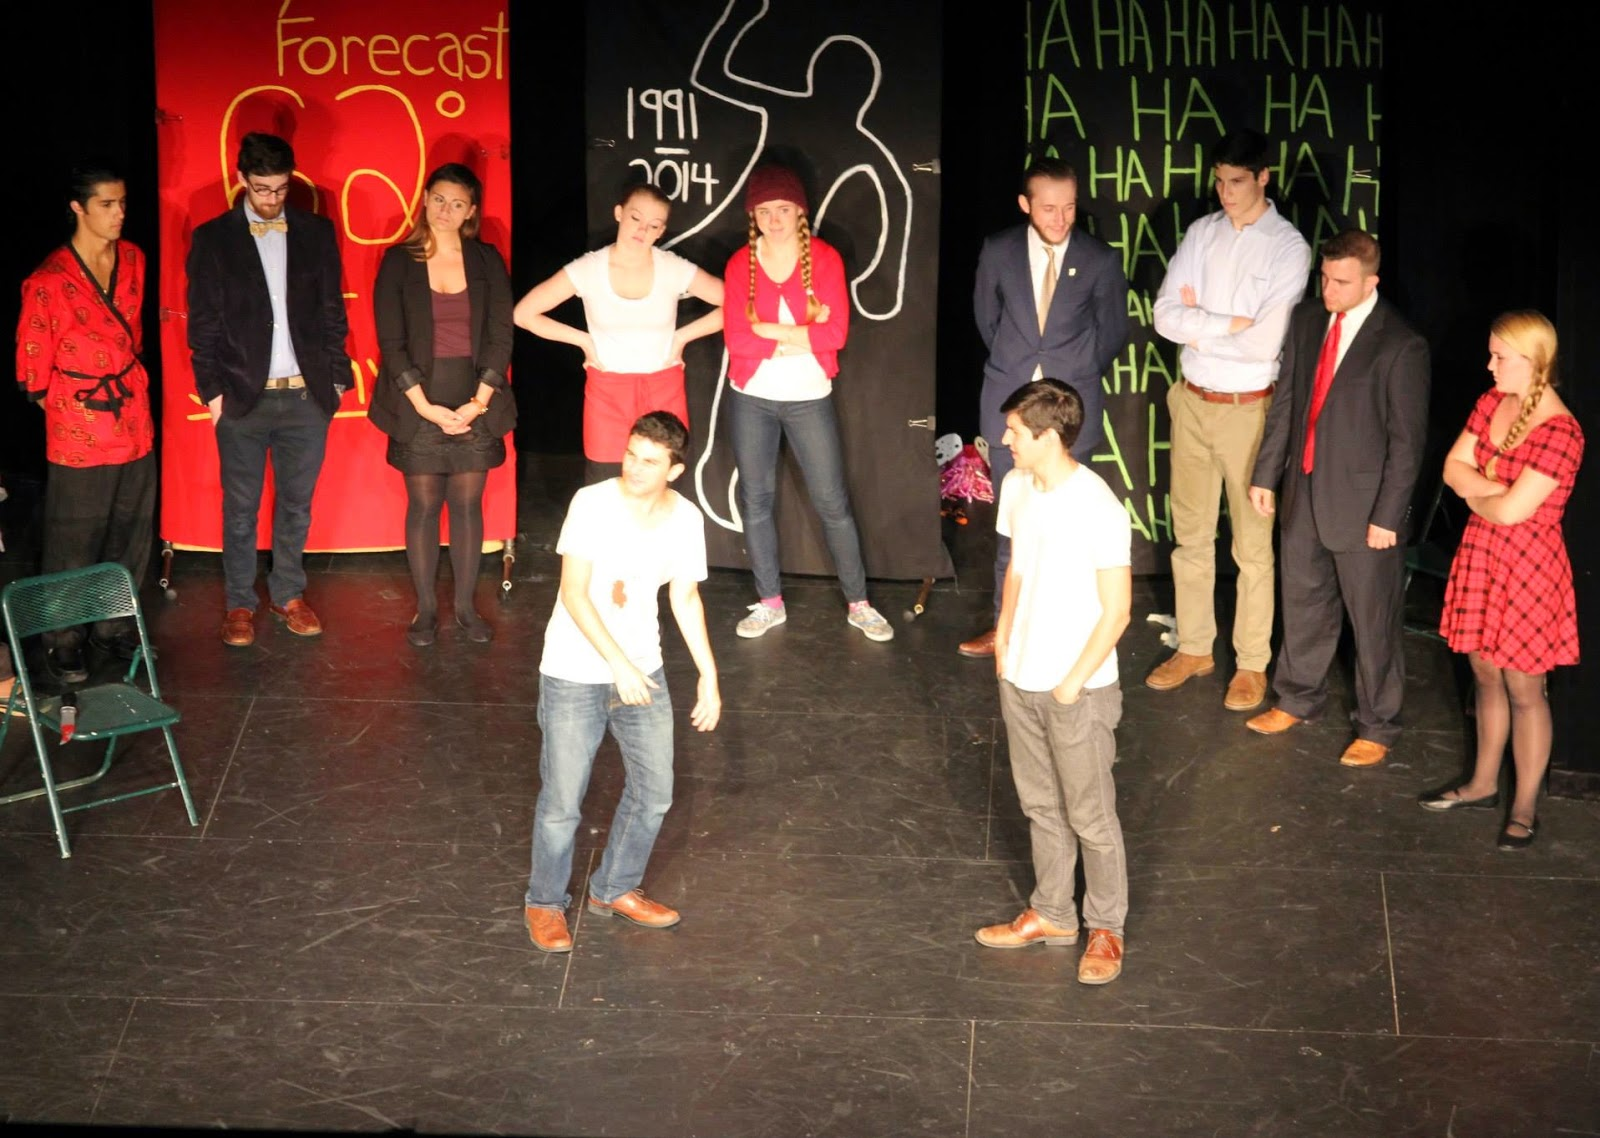 My Personal Hell By Jonathan O'neill At The Ny Int'l Fringe Festival,  August 2014